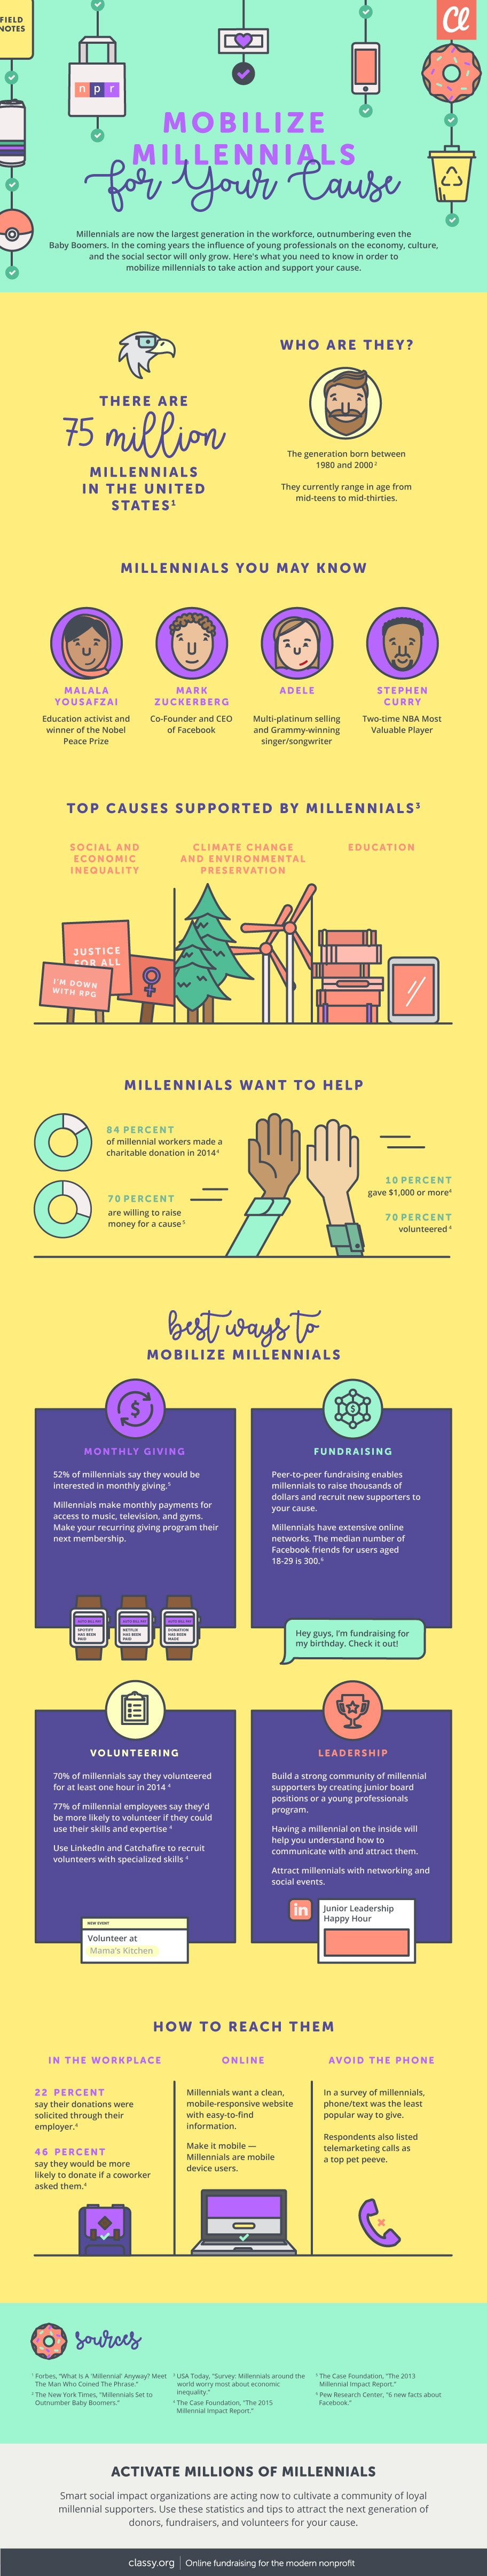 mobilize millennials infographic